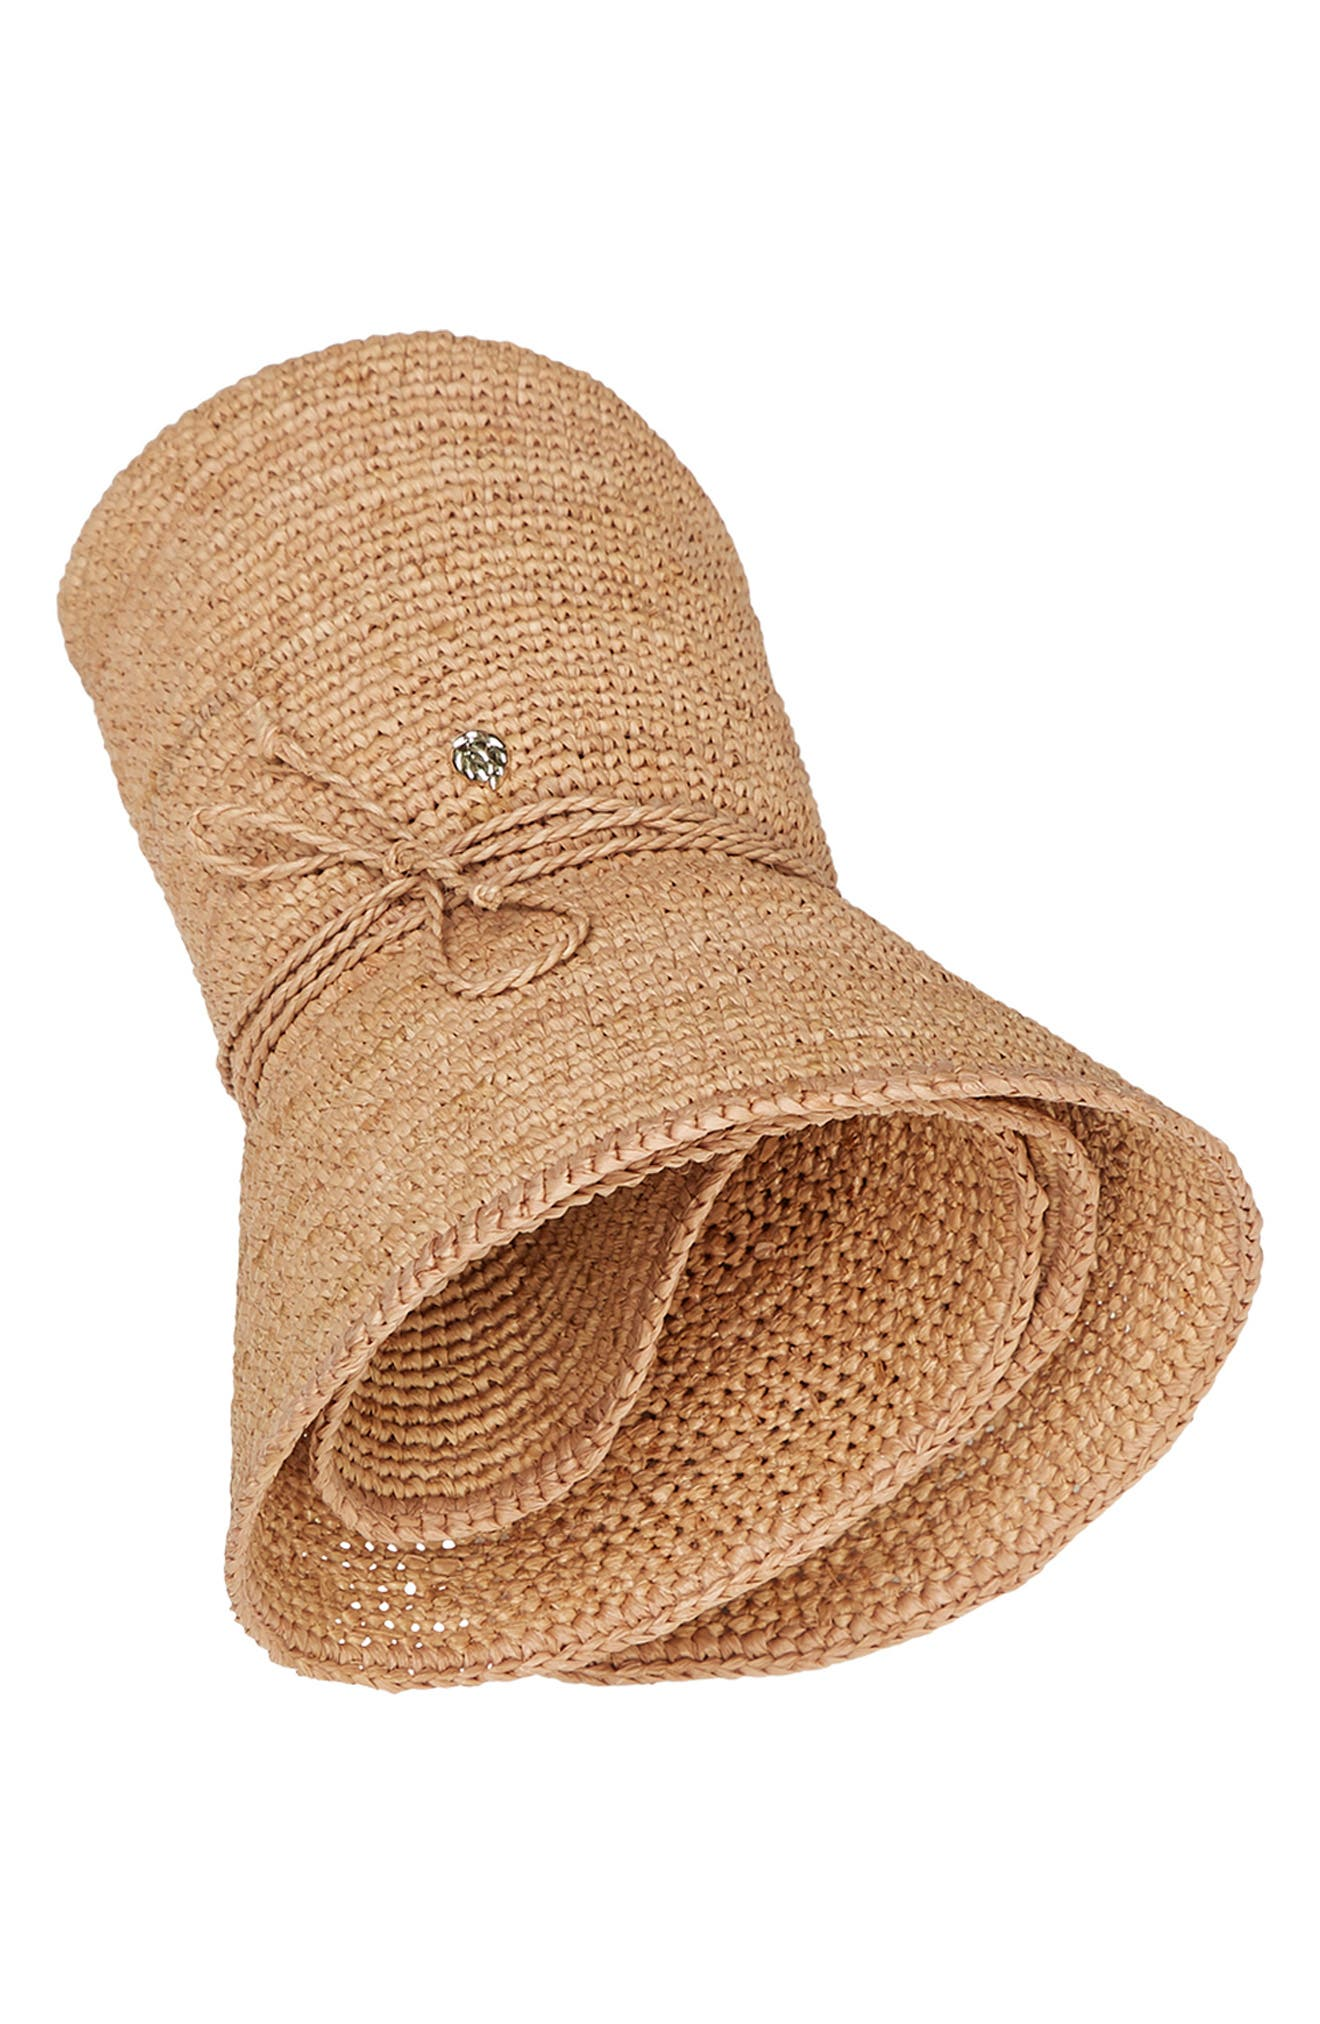 HELEN KAMINSKI,                             Desmonda Packable Raffia Fedora,                             Alternate thumbnail 3, color,                             NOUGAT